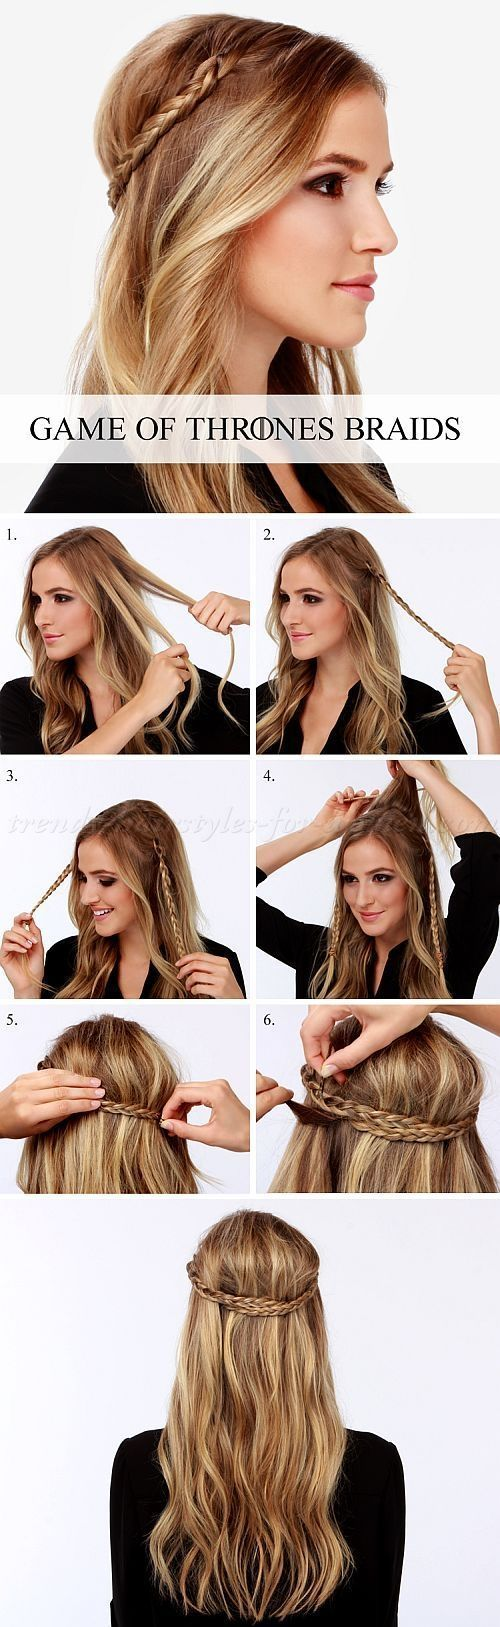 hairstyle tutorials, hairstyles step by step #HairstylesForWomen